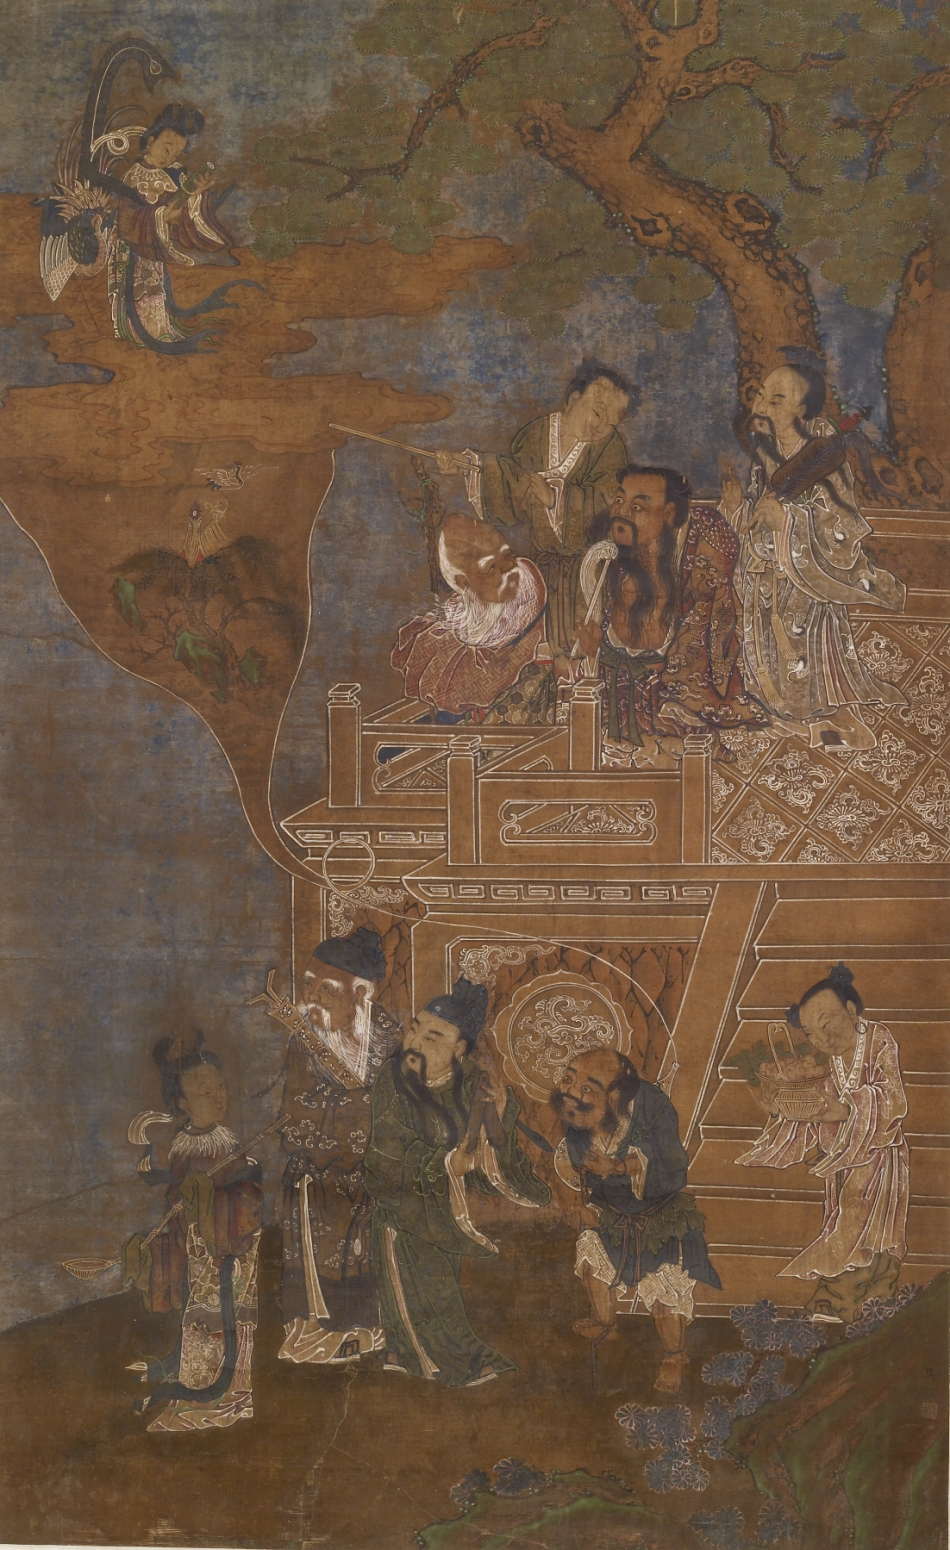 Chinese_-_The_Eight_Immortals_-_Walters_3535.jpg